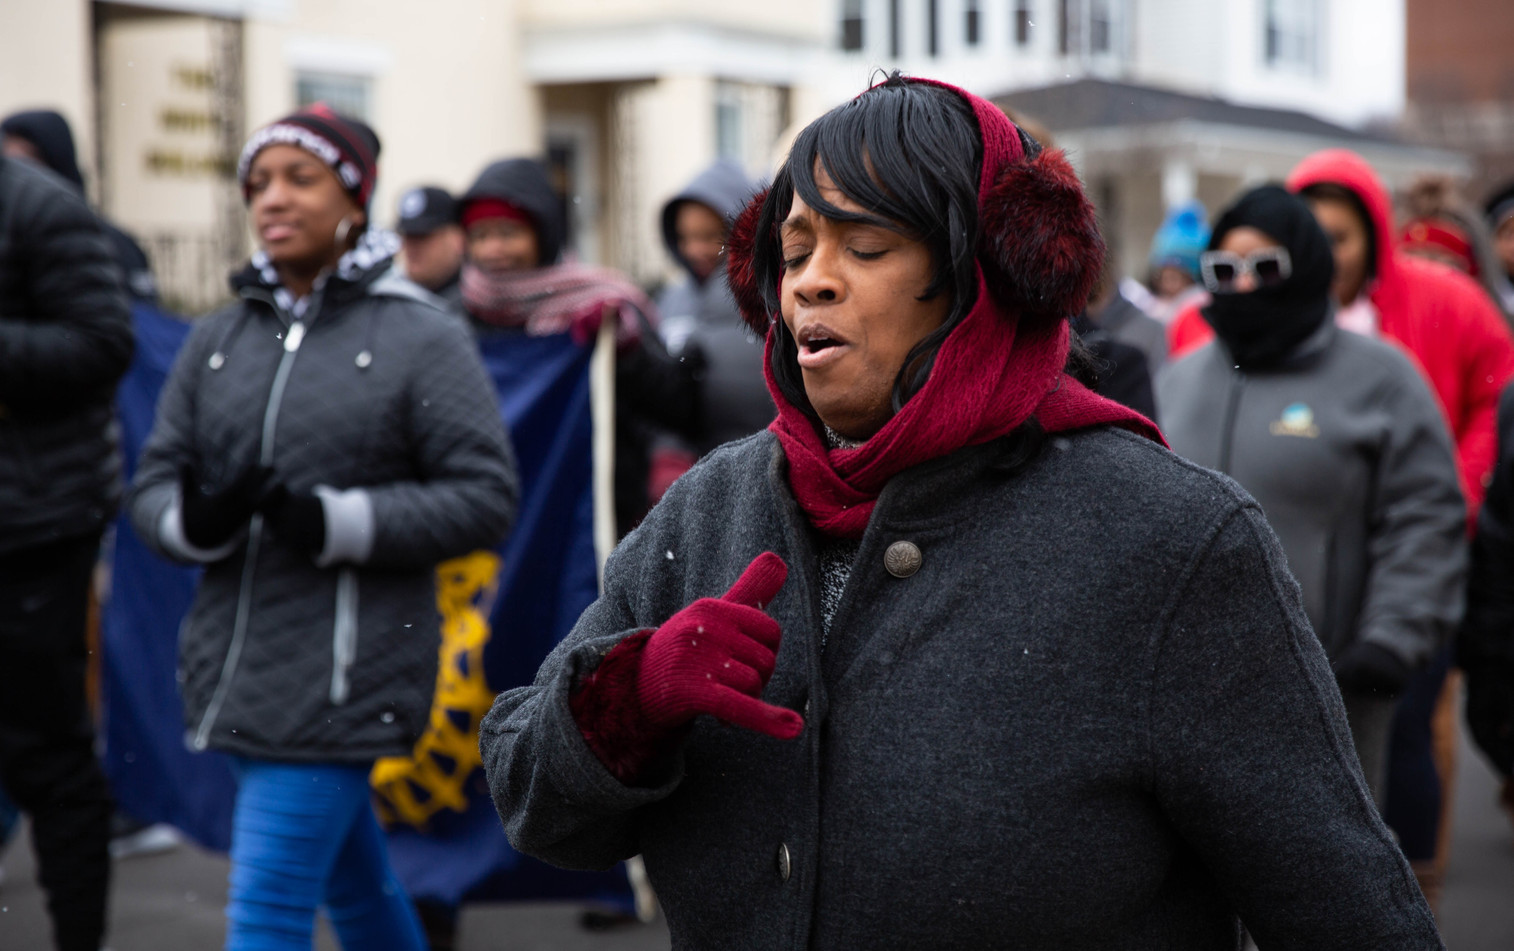 Felicia Bland of the MLK Planning Committee sings along with others participating in the Martin Luther King Jr. Day March, which started at the Warren County Justice Center and ended with a celebration ceremony at State Street Baptist Church, on Monday, Jan. 20, 2020. ©2020 Grace Ramey